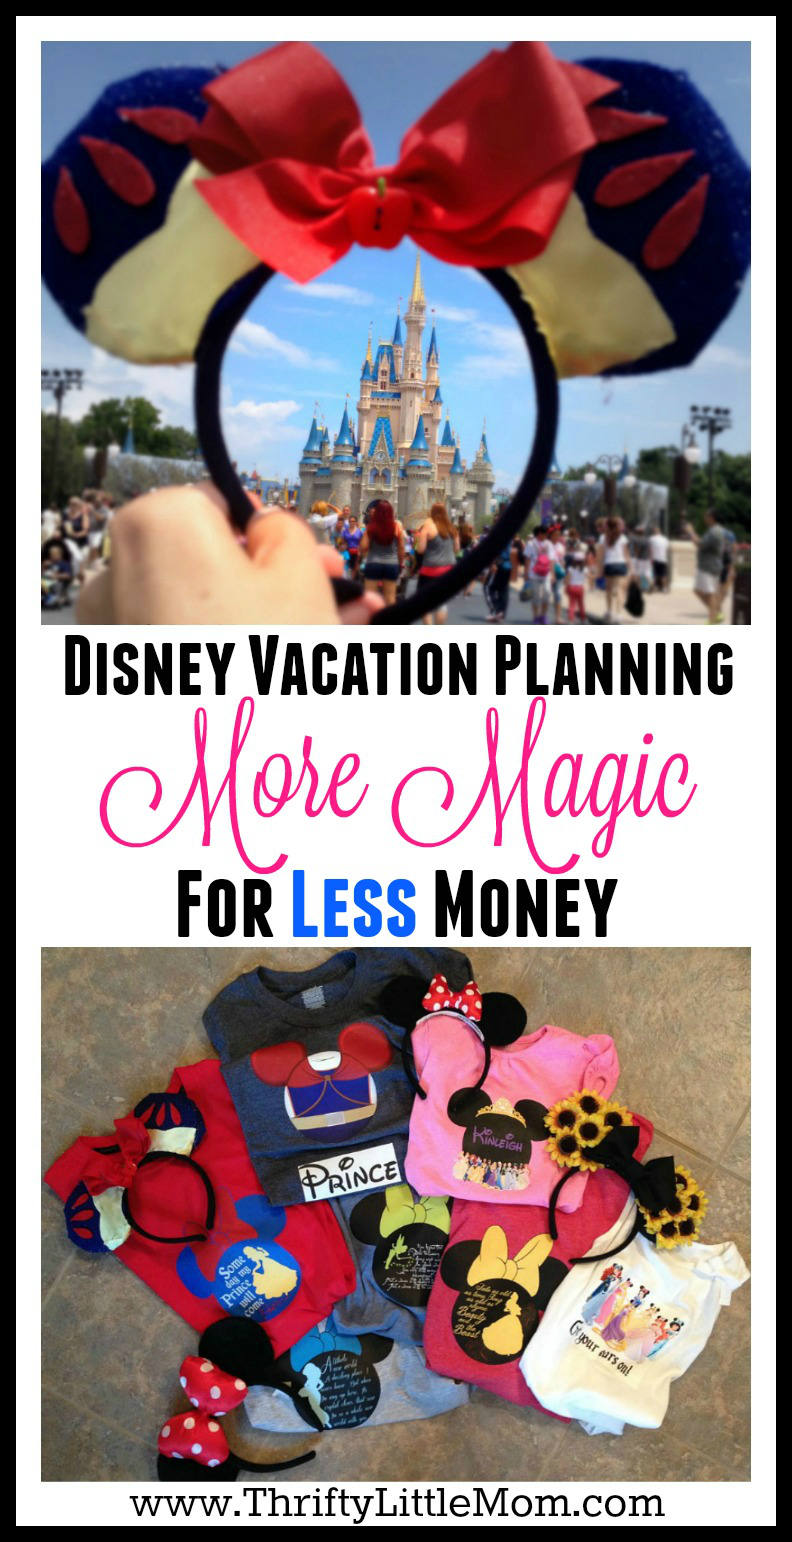 Disney Vacation Planning